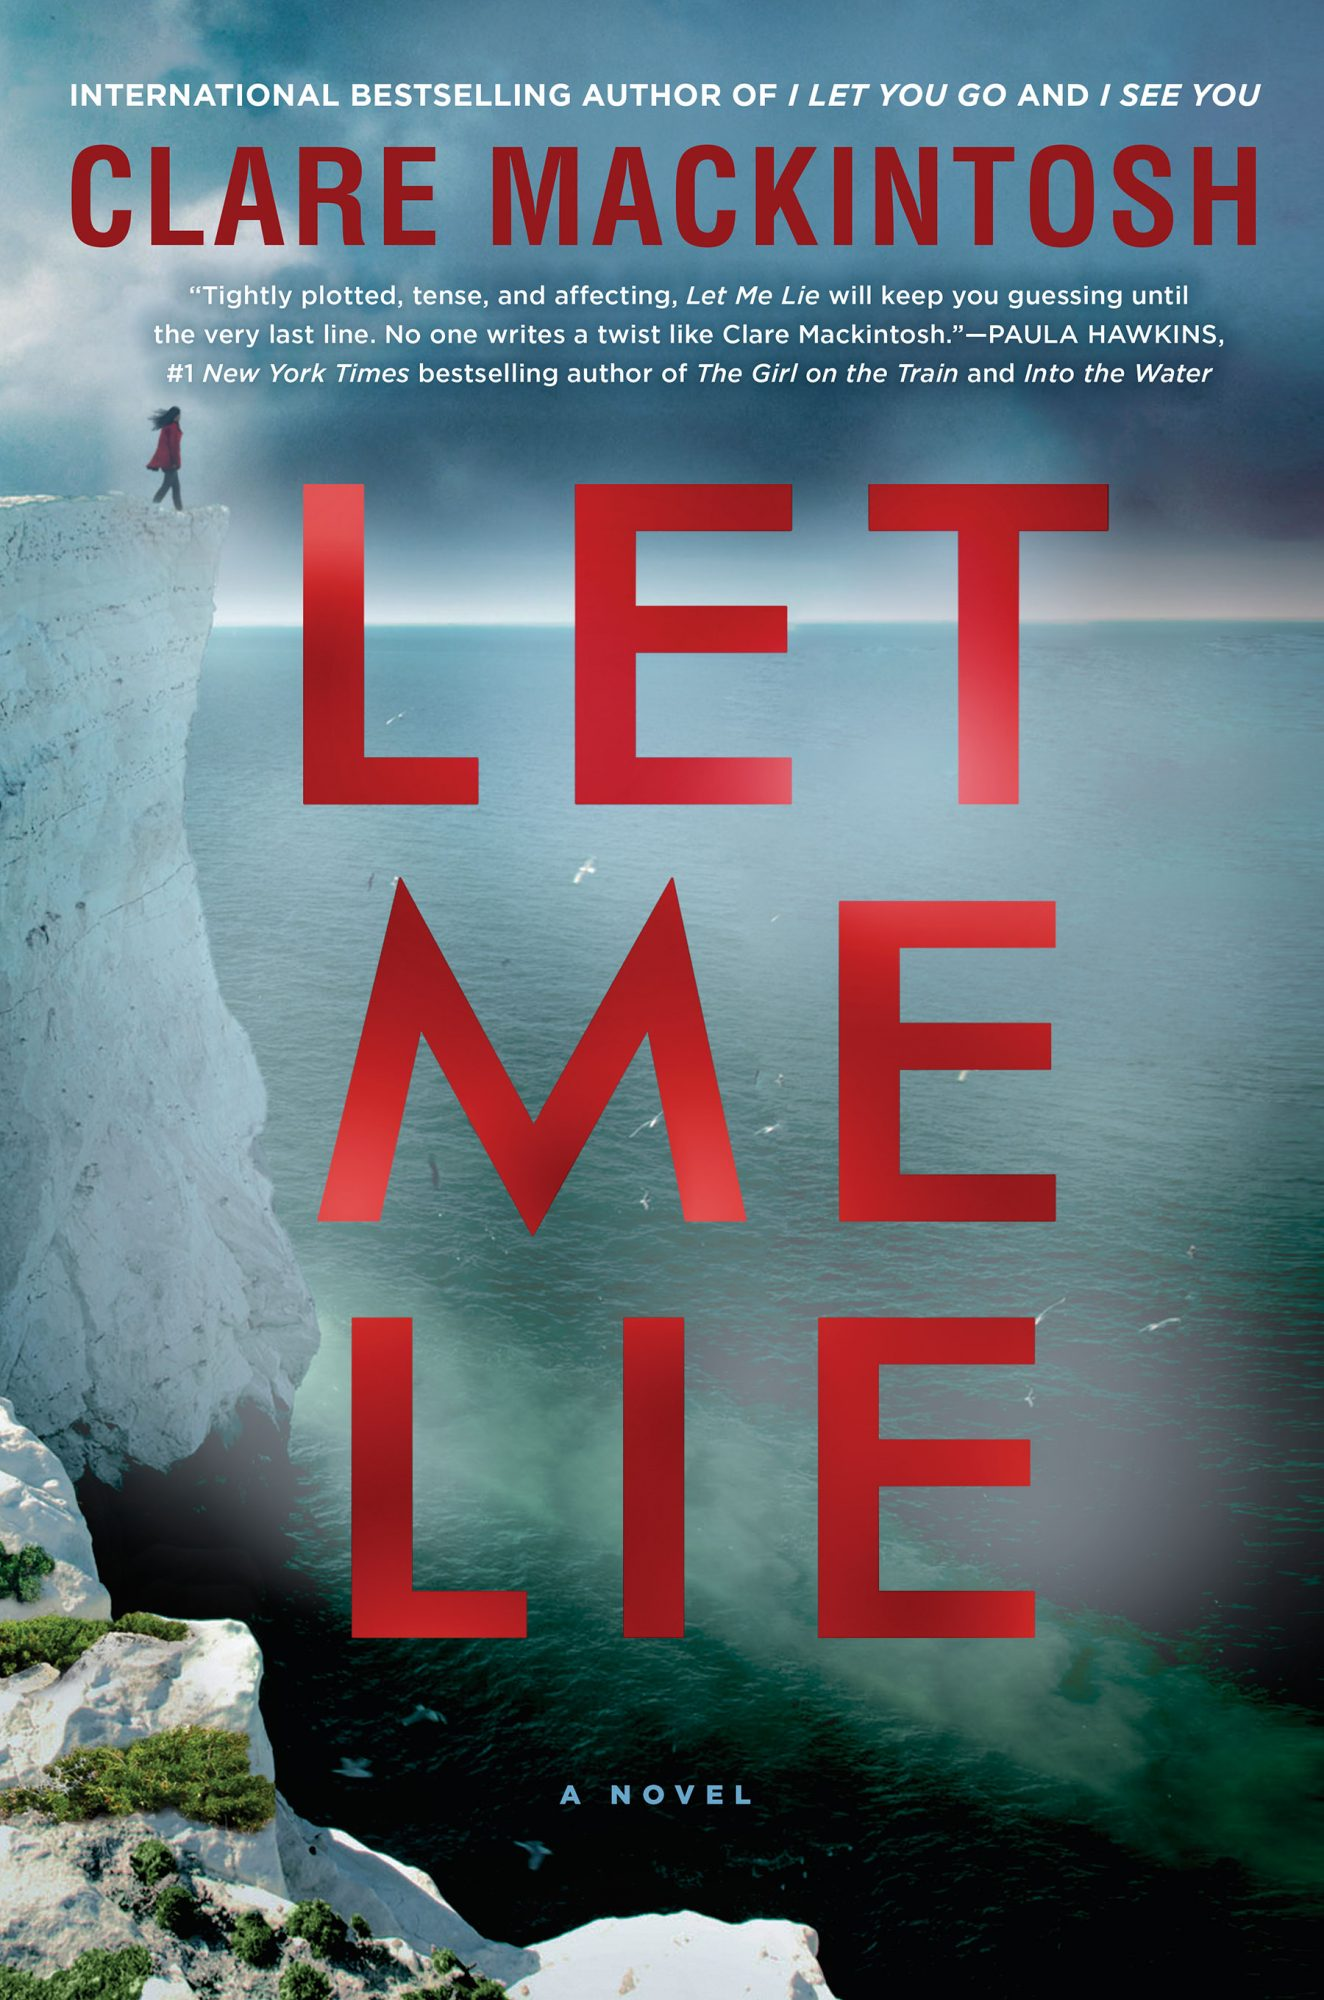 Let Me Lieby Clare Mackintosh